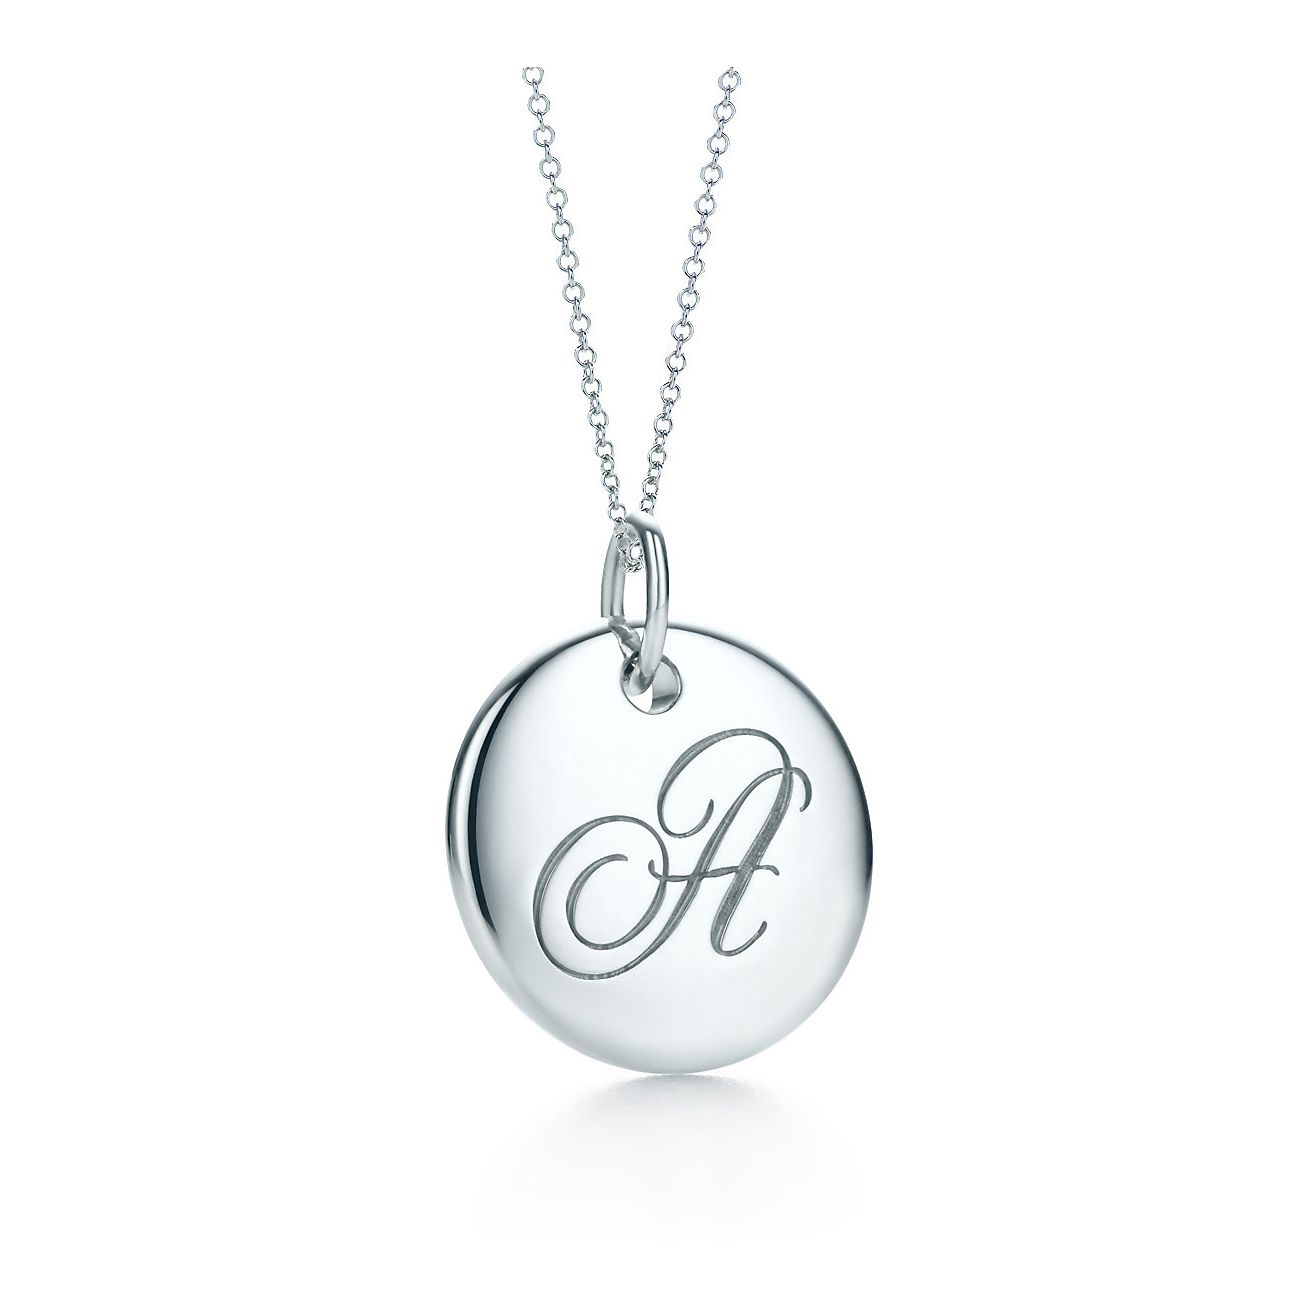 Tiffany Note Charme Du Disque Alphabet En Or 18 Carats, Lettres Minuscules Az Disponible - Taille O Tiffany & Co.